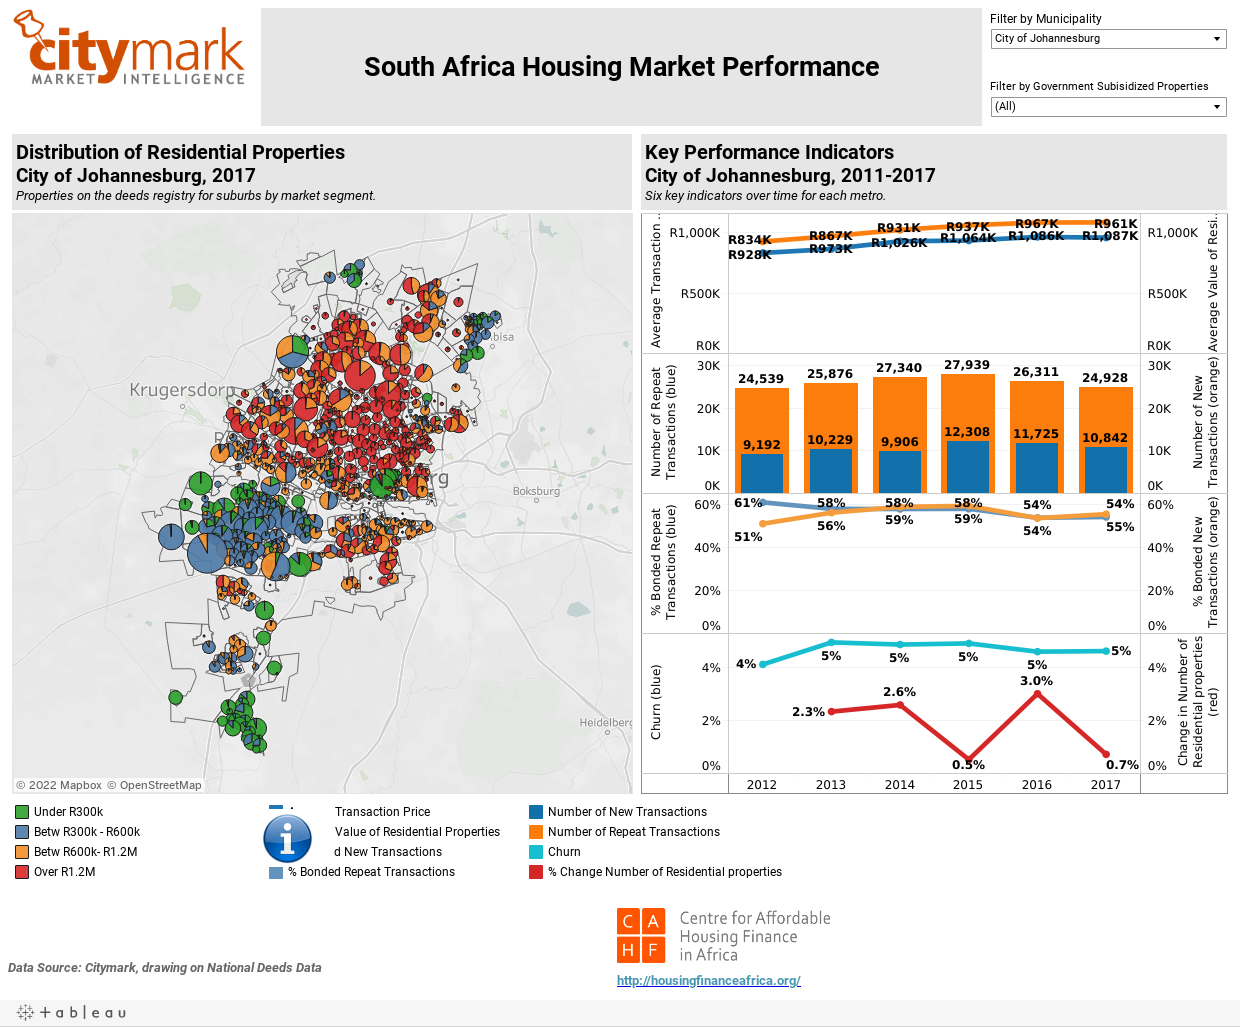 South Africa Housing Market Performance